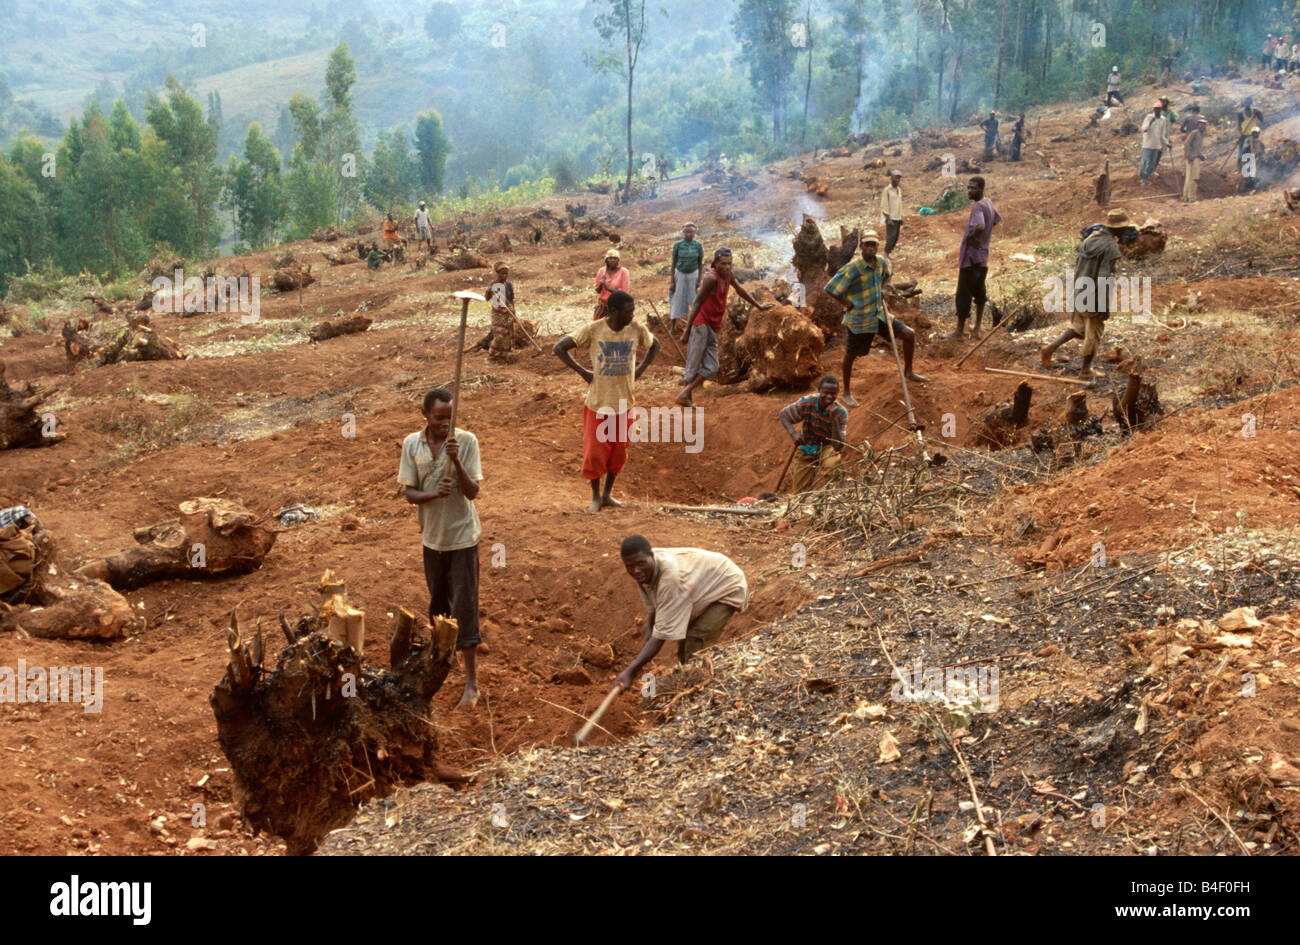 Workers clearing trees and preparing rural land for agriculture redevelopment project, Angola, Africa Stock Photo